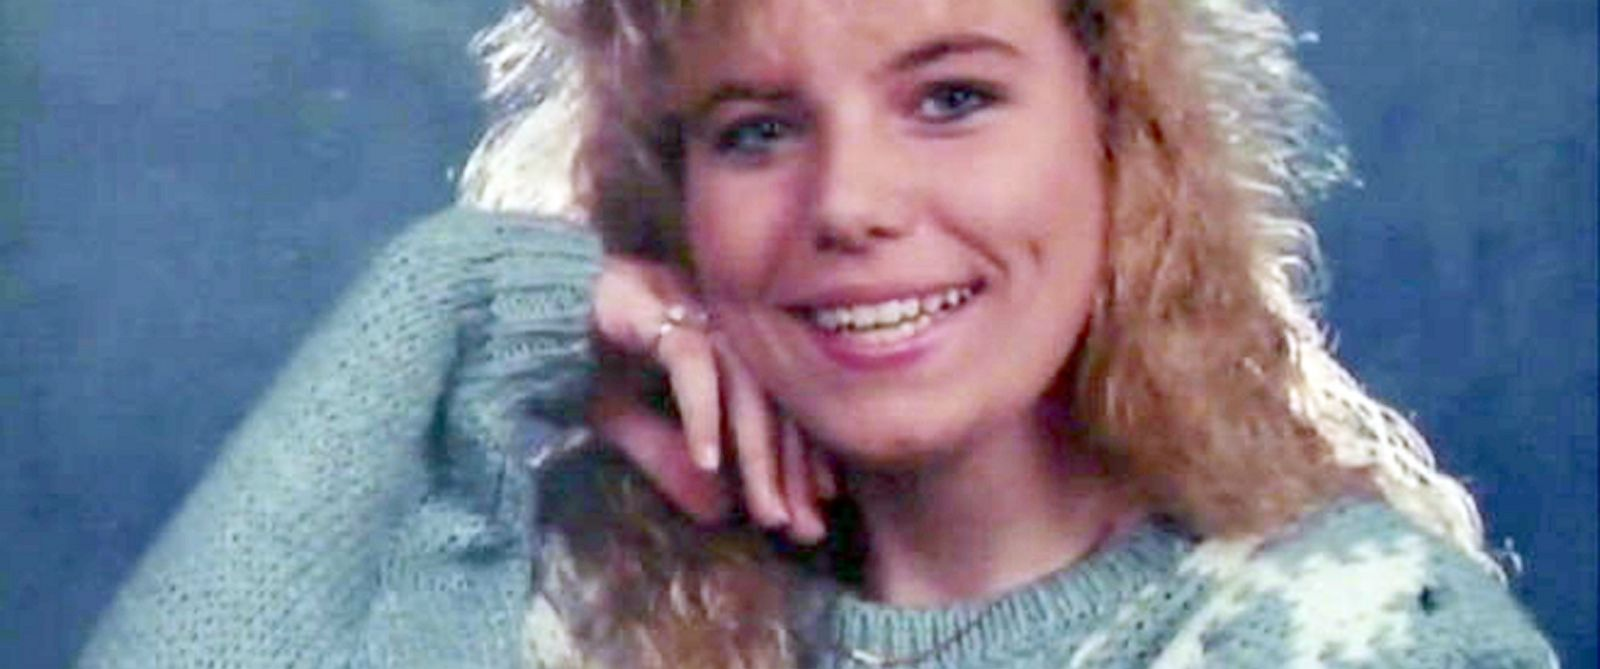 PHOTO: Crystal Soles disappeared in 2005, leaving behind a son, now 15.